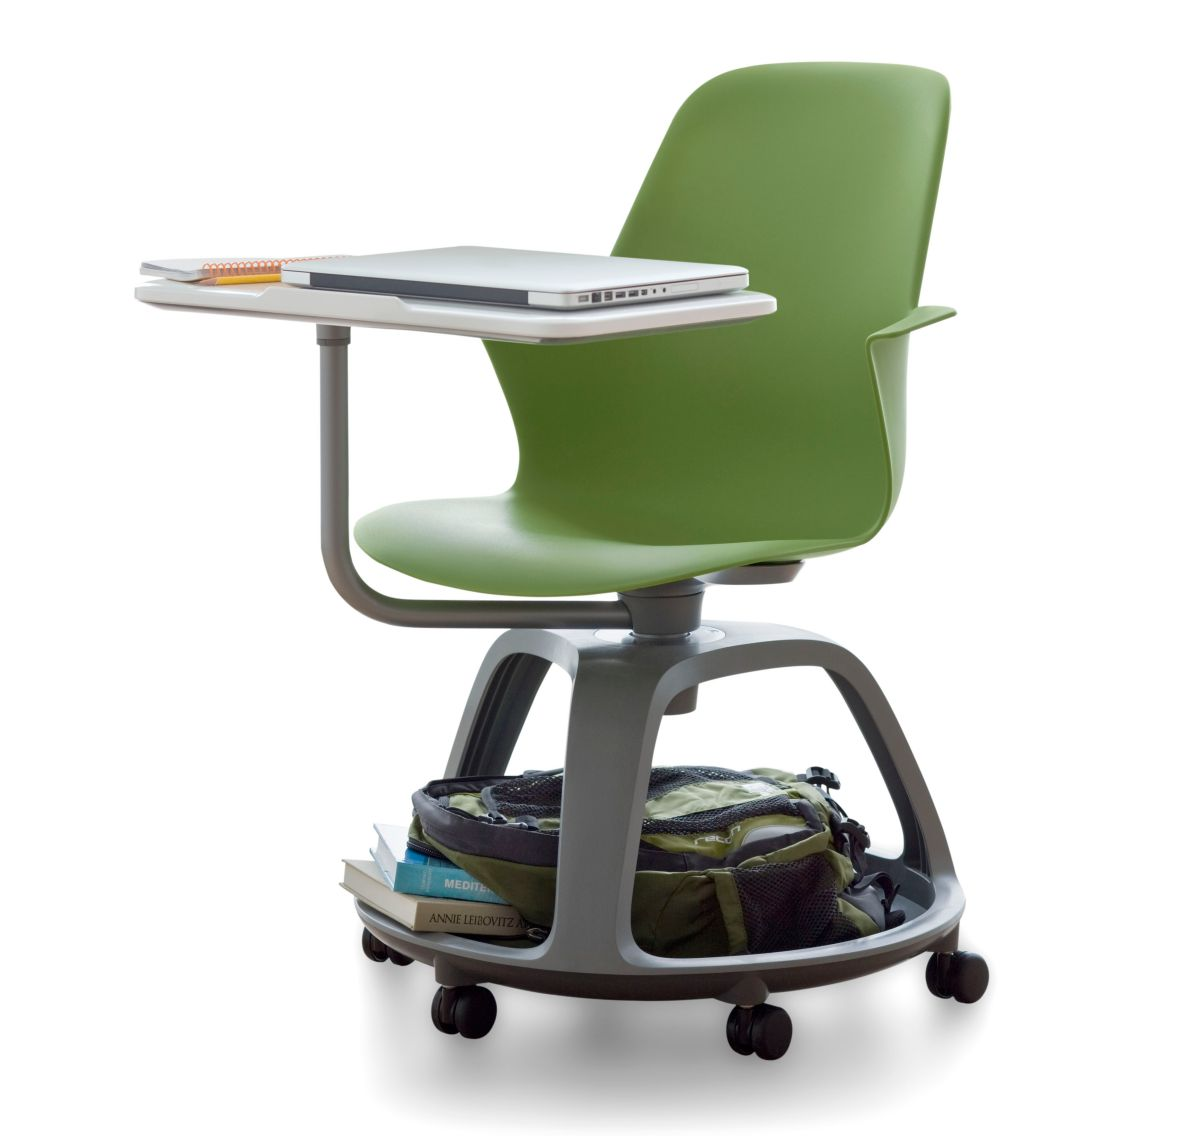 revolving chair in surat deep seating patio chairs steel 140610 14 contemporist node by steelcase at neocon 2010